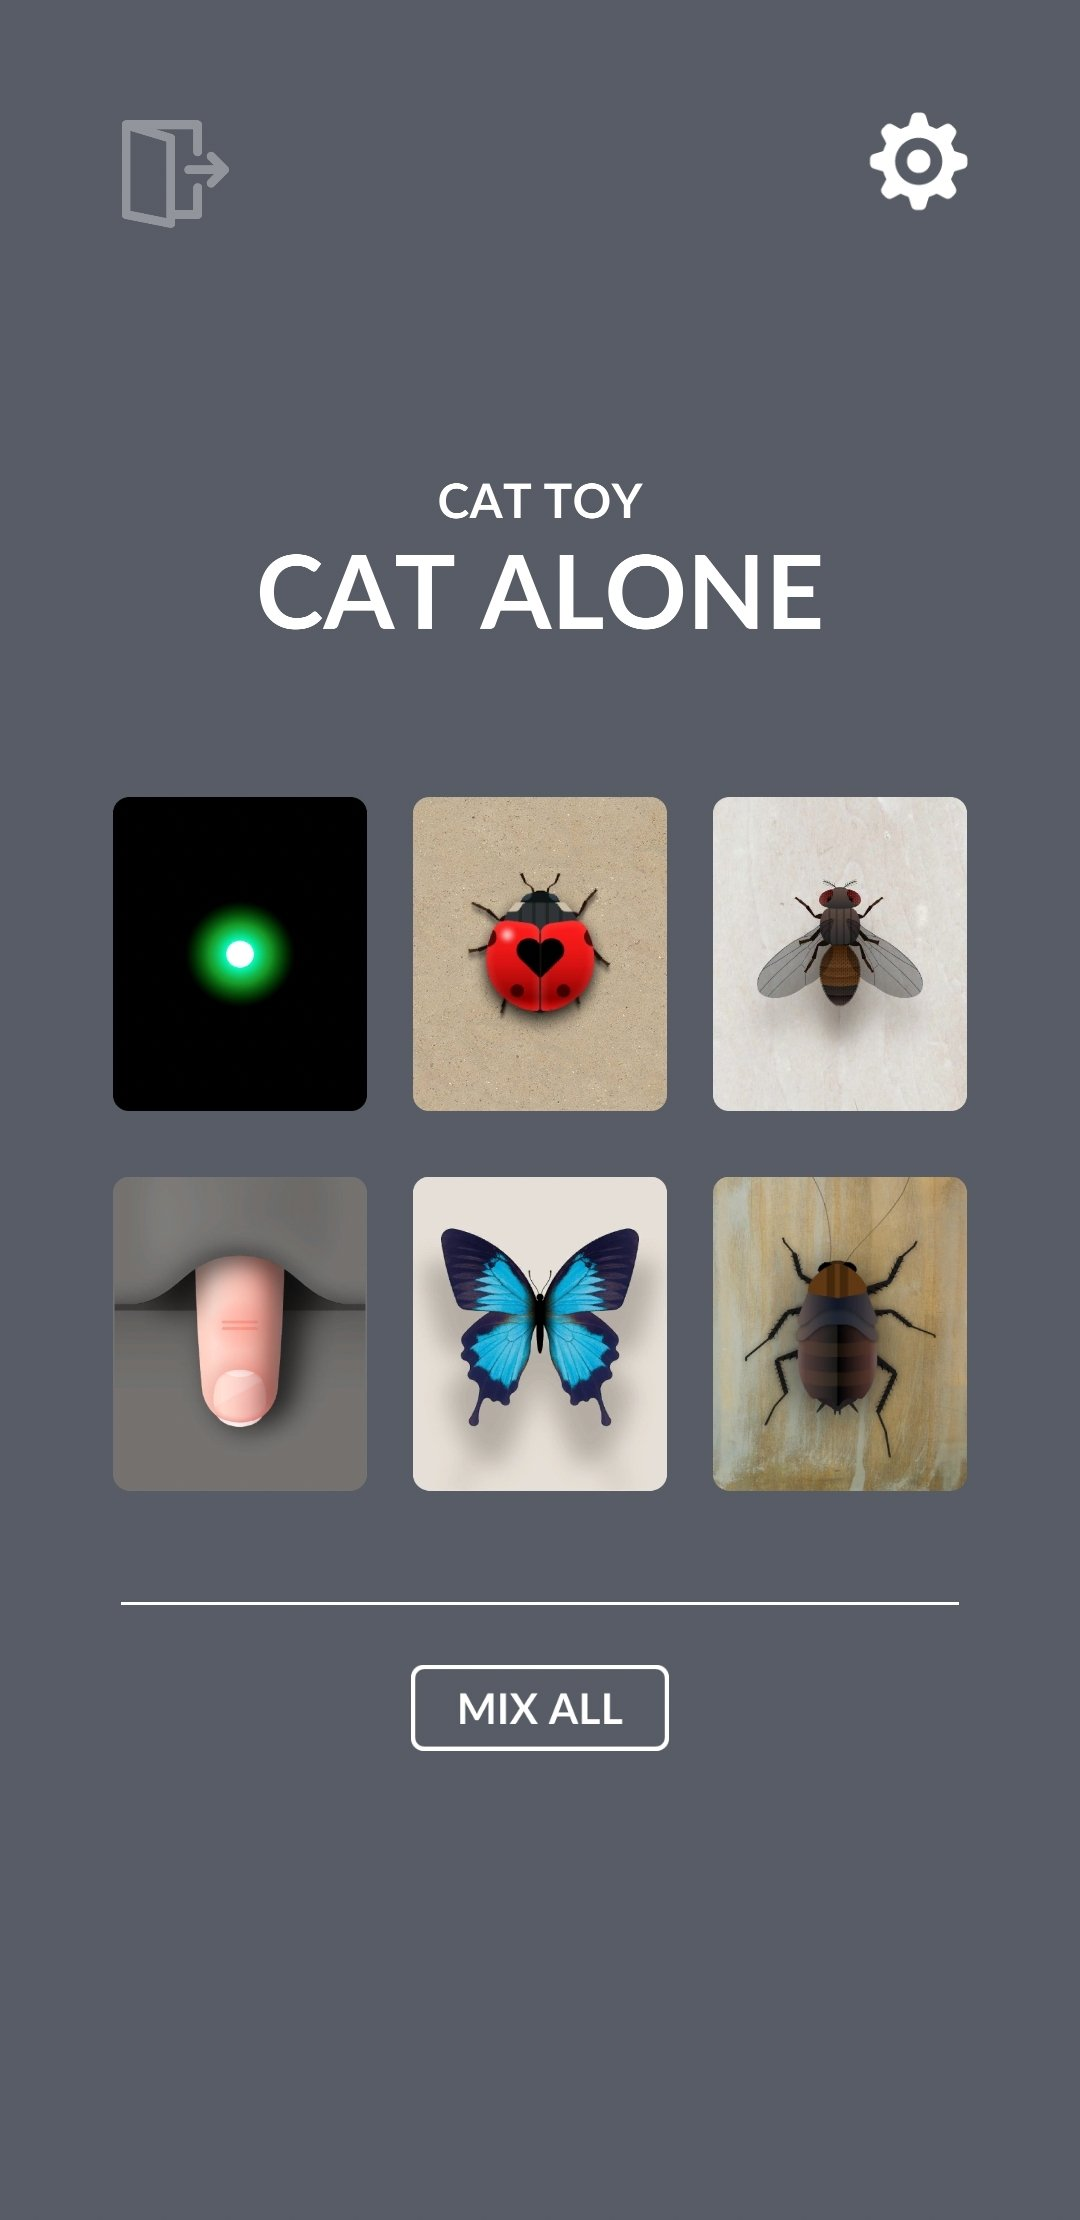 Cat Alone Android image 5